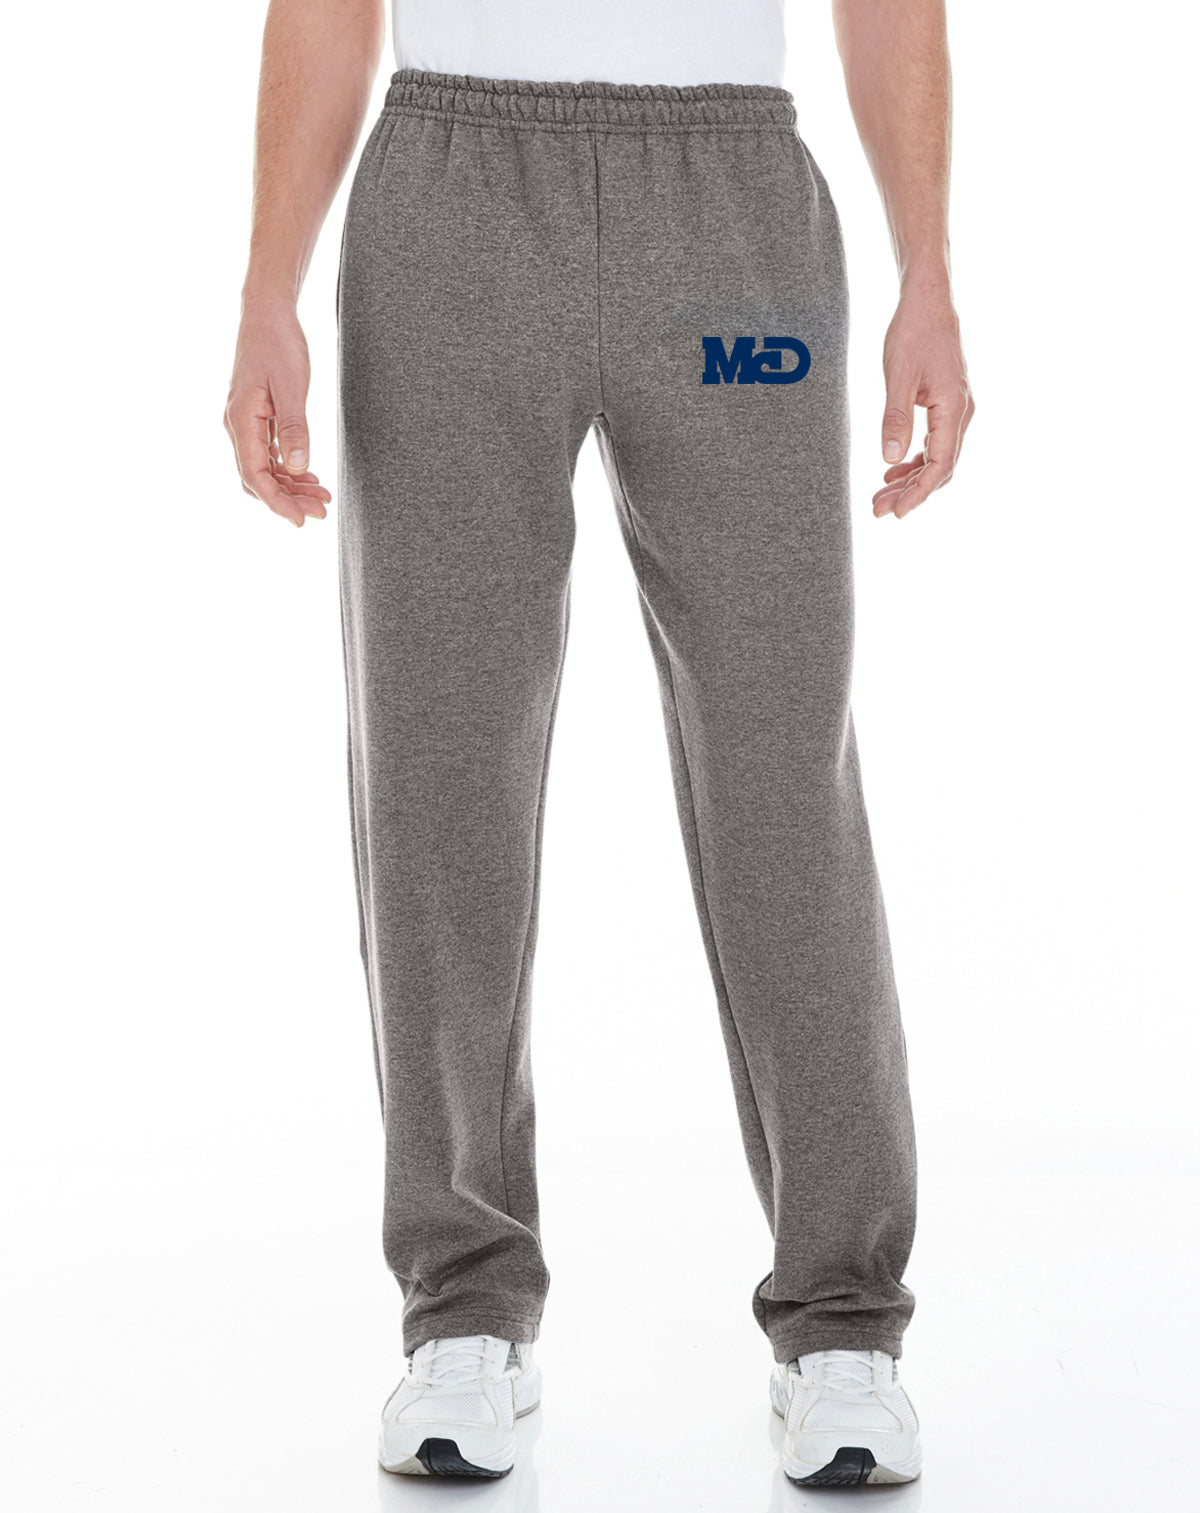 MCD LOGO GRAY OPEN BOTTOM SWEATPANTS